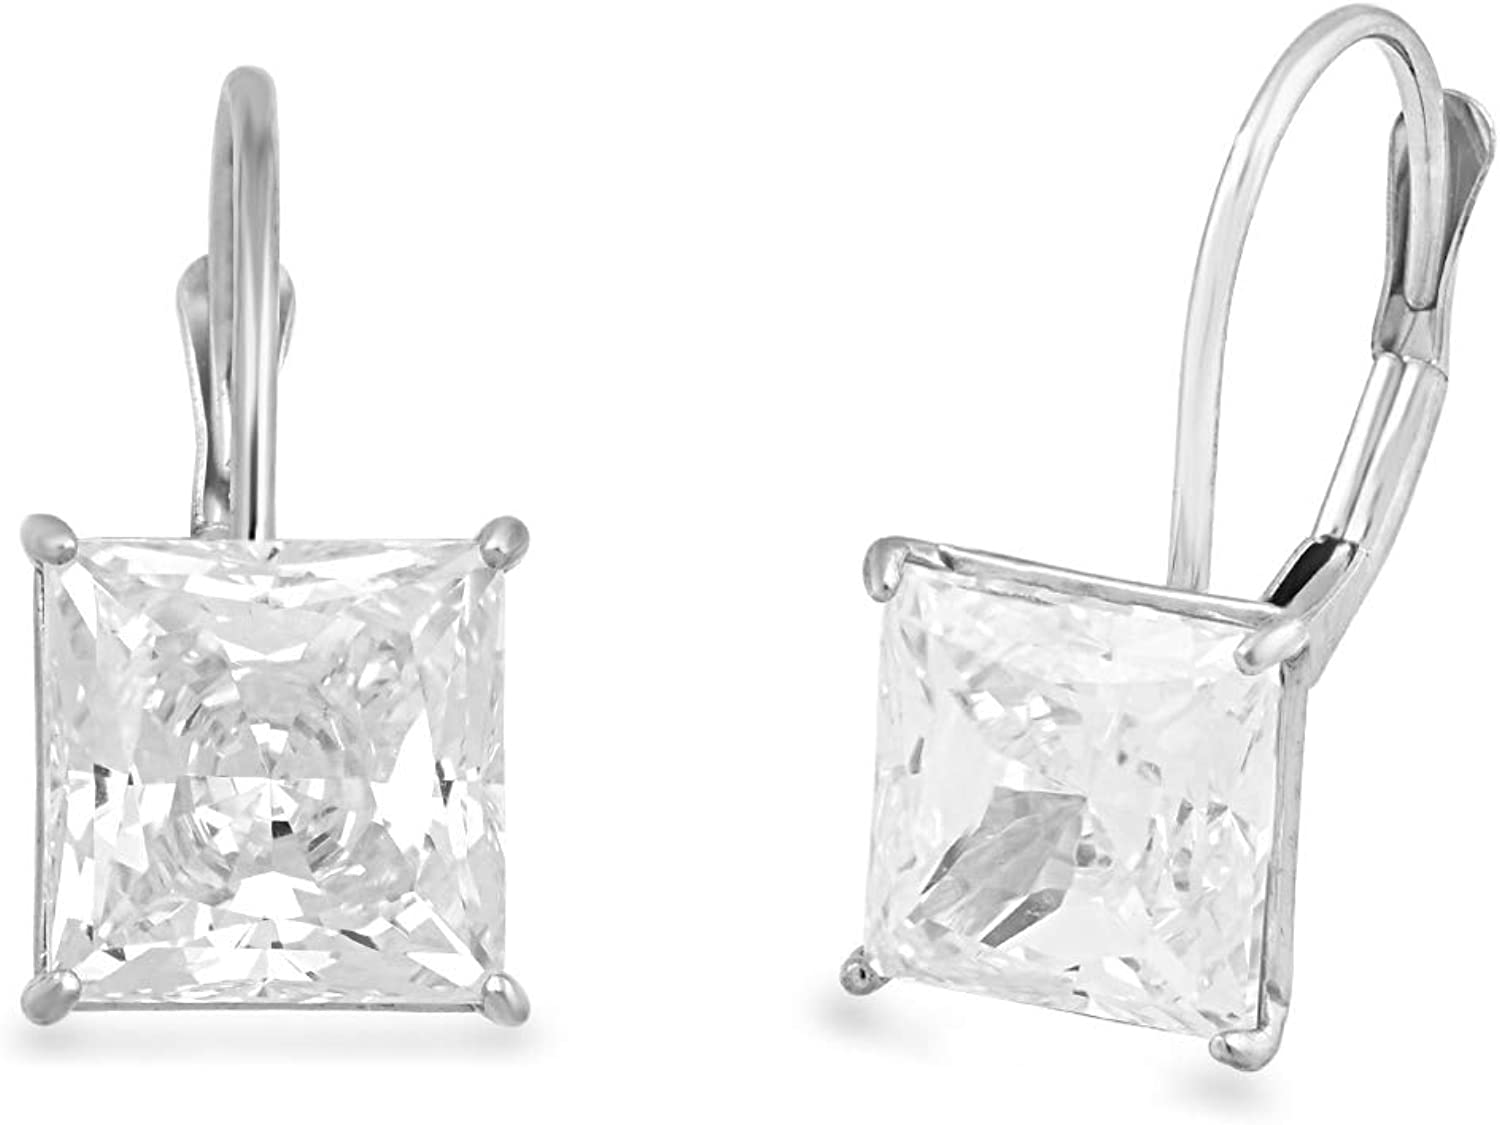 Jewelili 10K White Gold 7mm Square White Cubic Zirconia Clip On Earrings